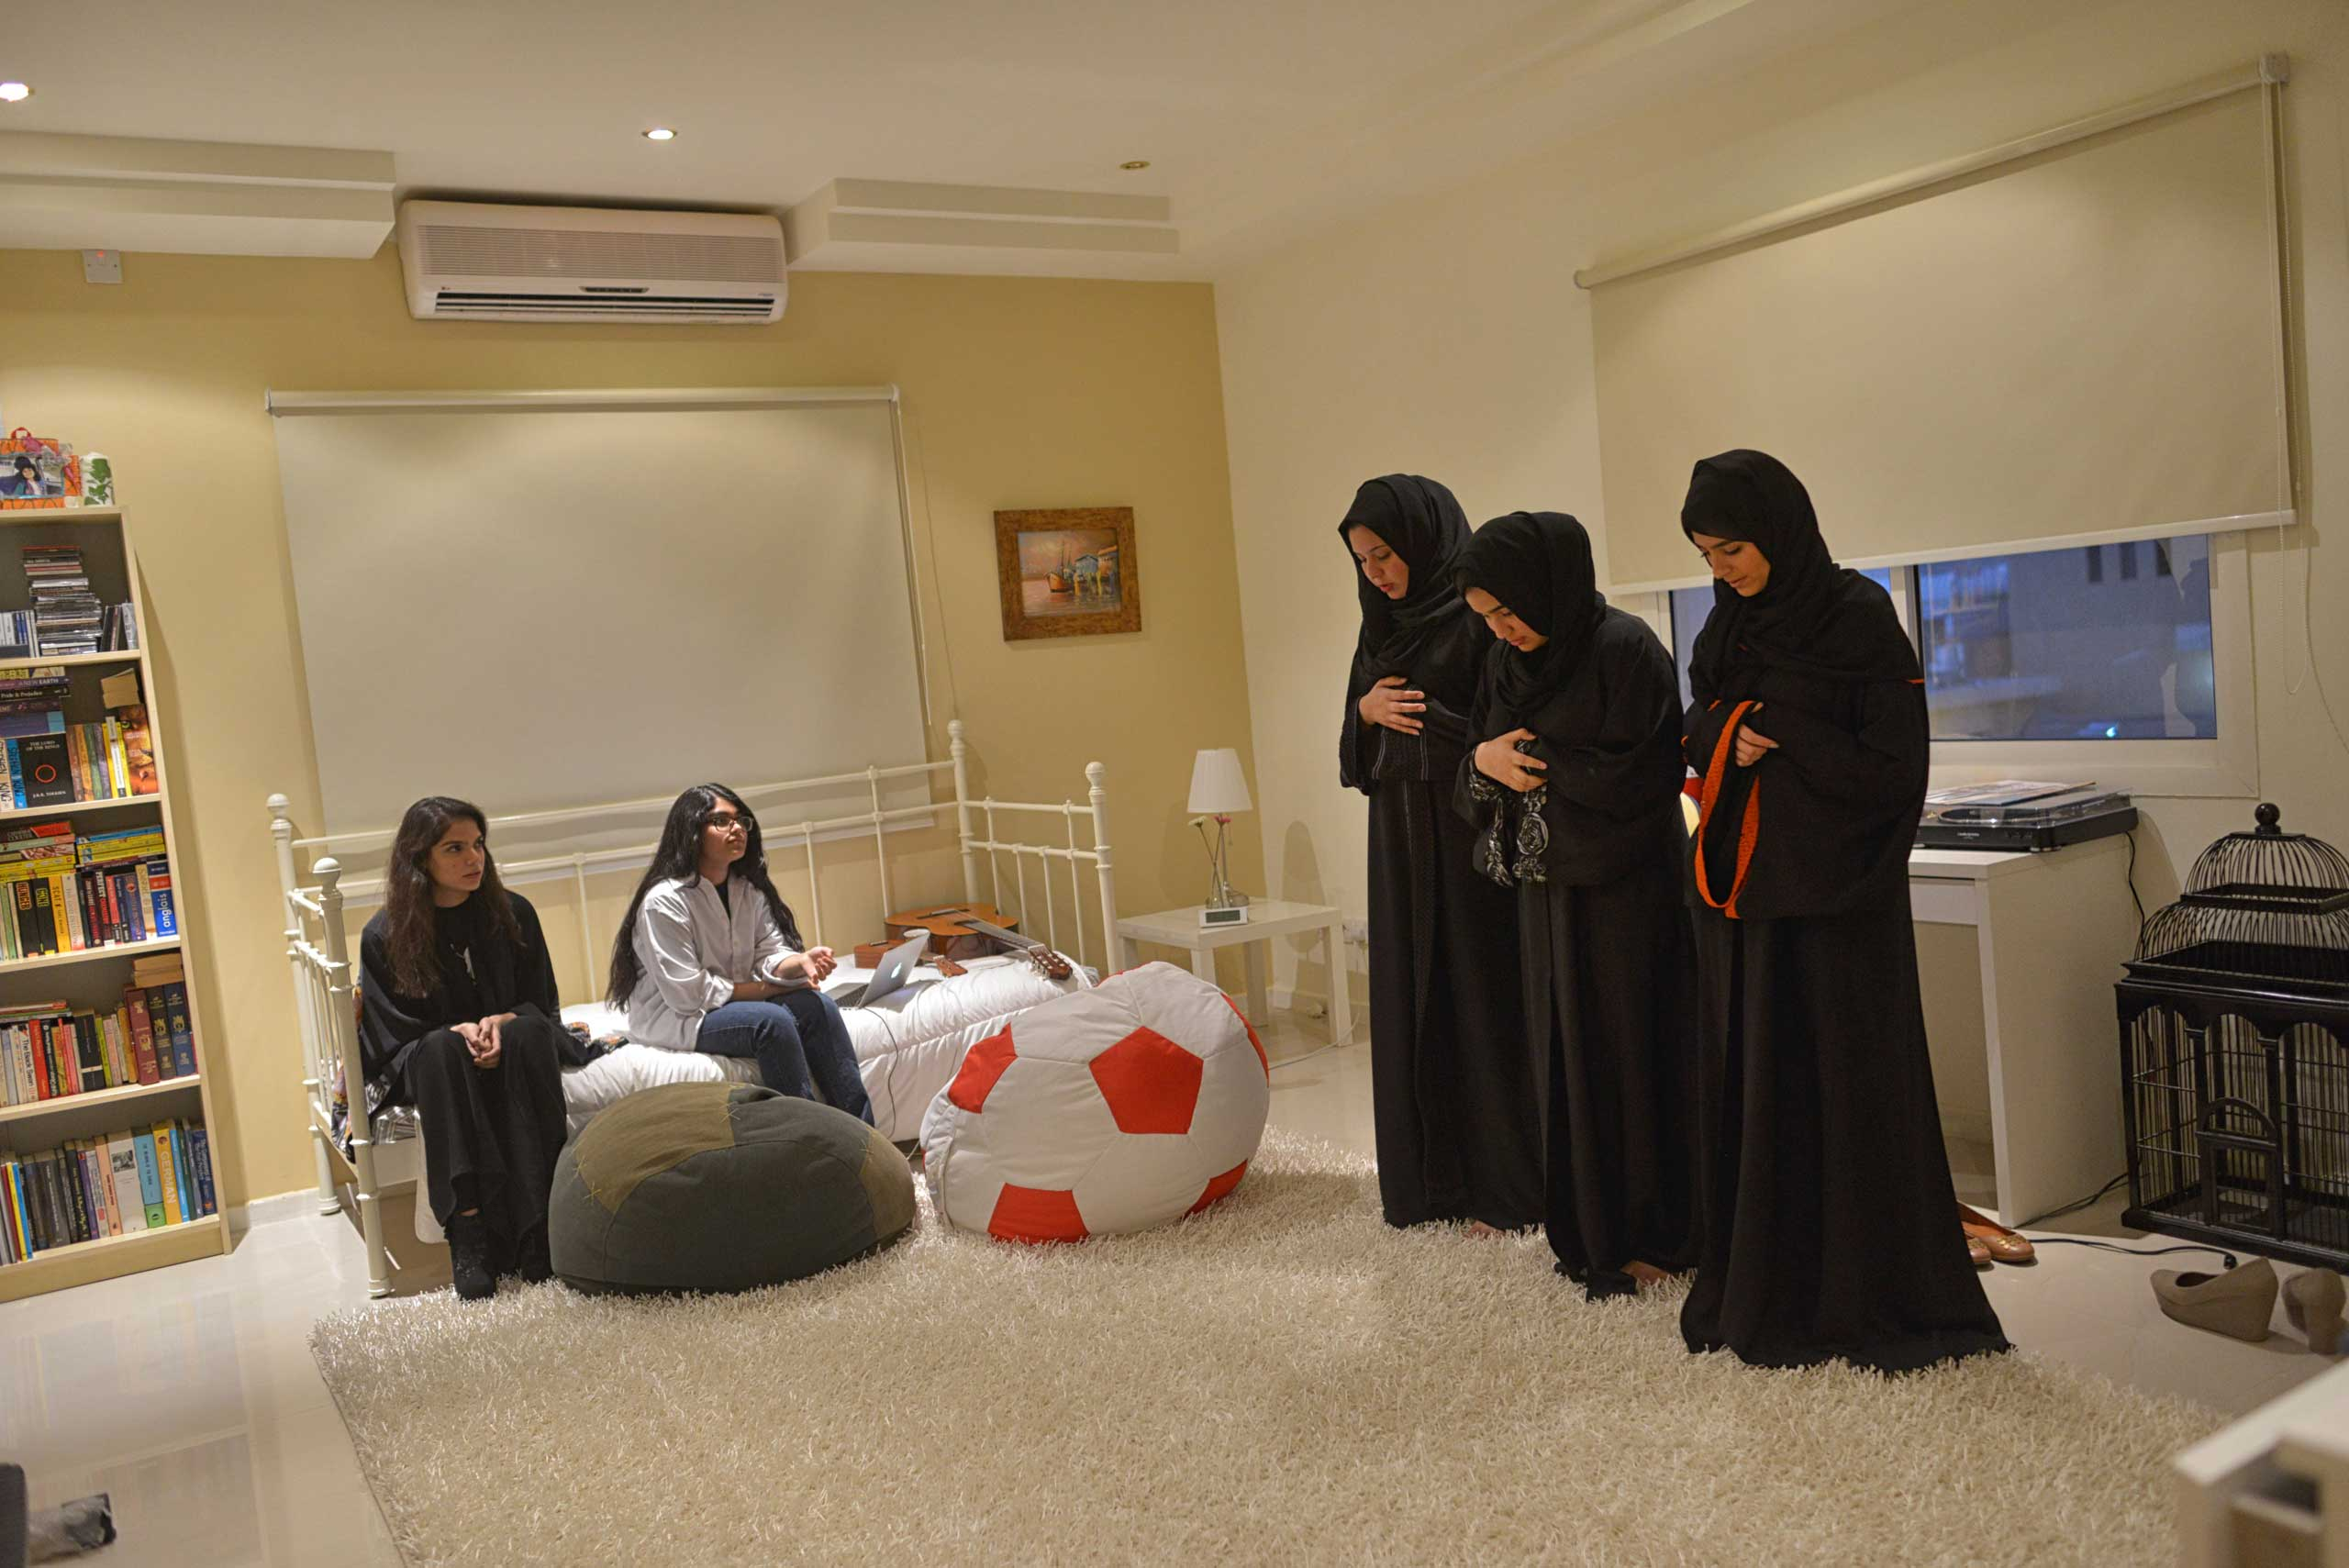 Young Saudi women pray in a friend's home before going out to dinner in Riyadh. Though statistics are difficult to confirm, youth unemployment and poverty are on the rise in Saudi Arabia. While society is increasingly open to women in the workforce, there are still limited jobs in which women and men can work side by side. There are a great number of highly educated Saudis who can not find work suitable for their qualifications.